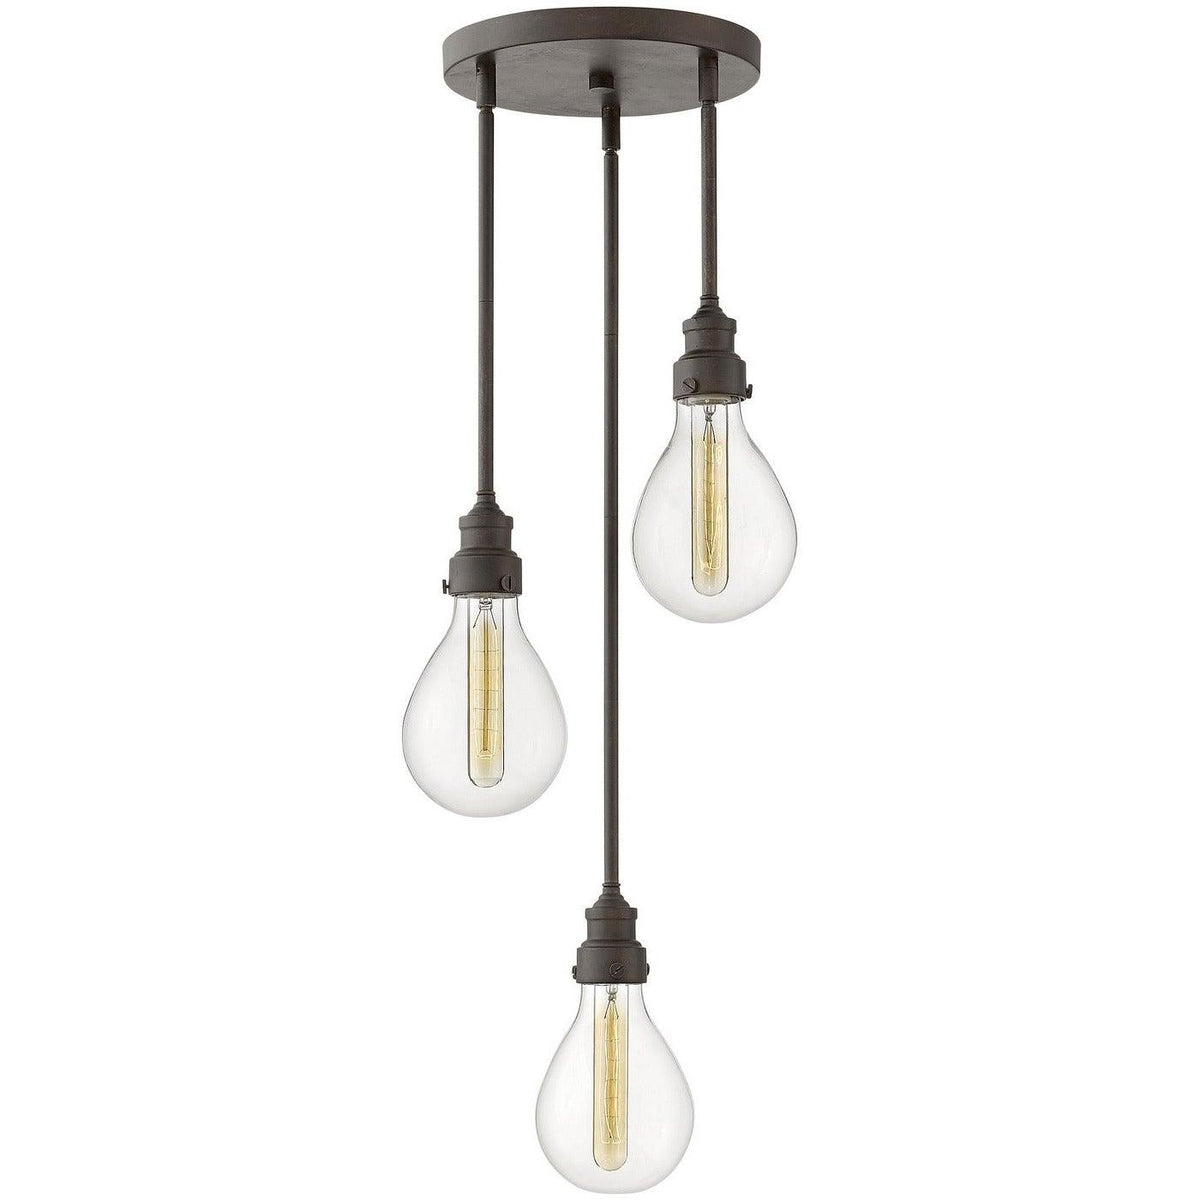 Hinkley Canada - 3263IN - Three Light Pendant - Denton - Industrial Iron